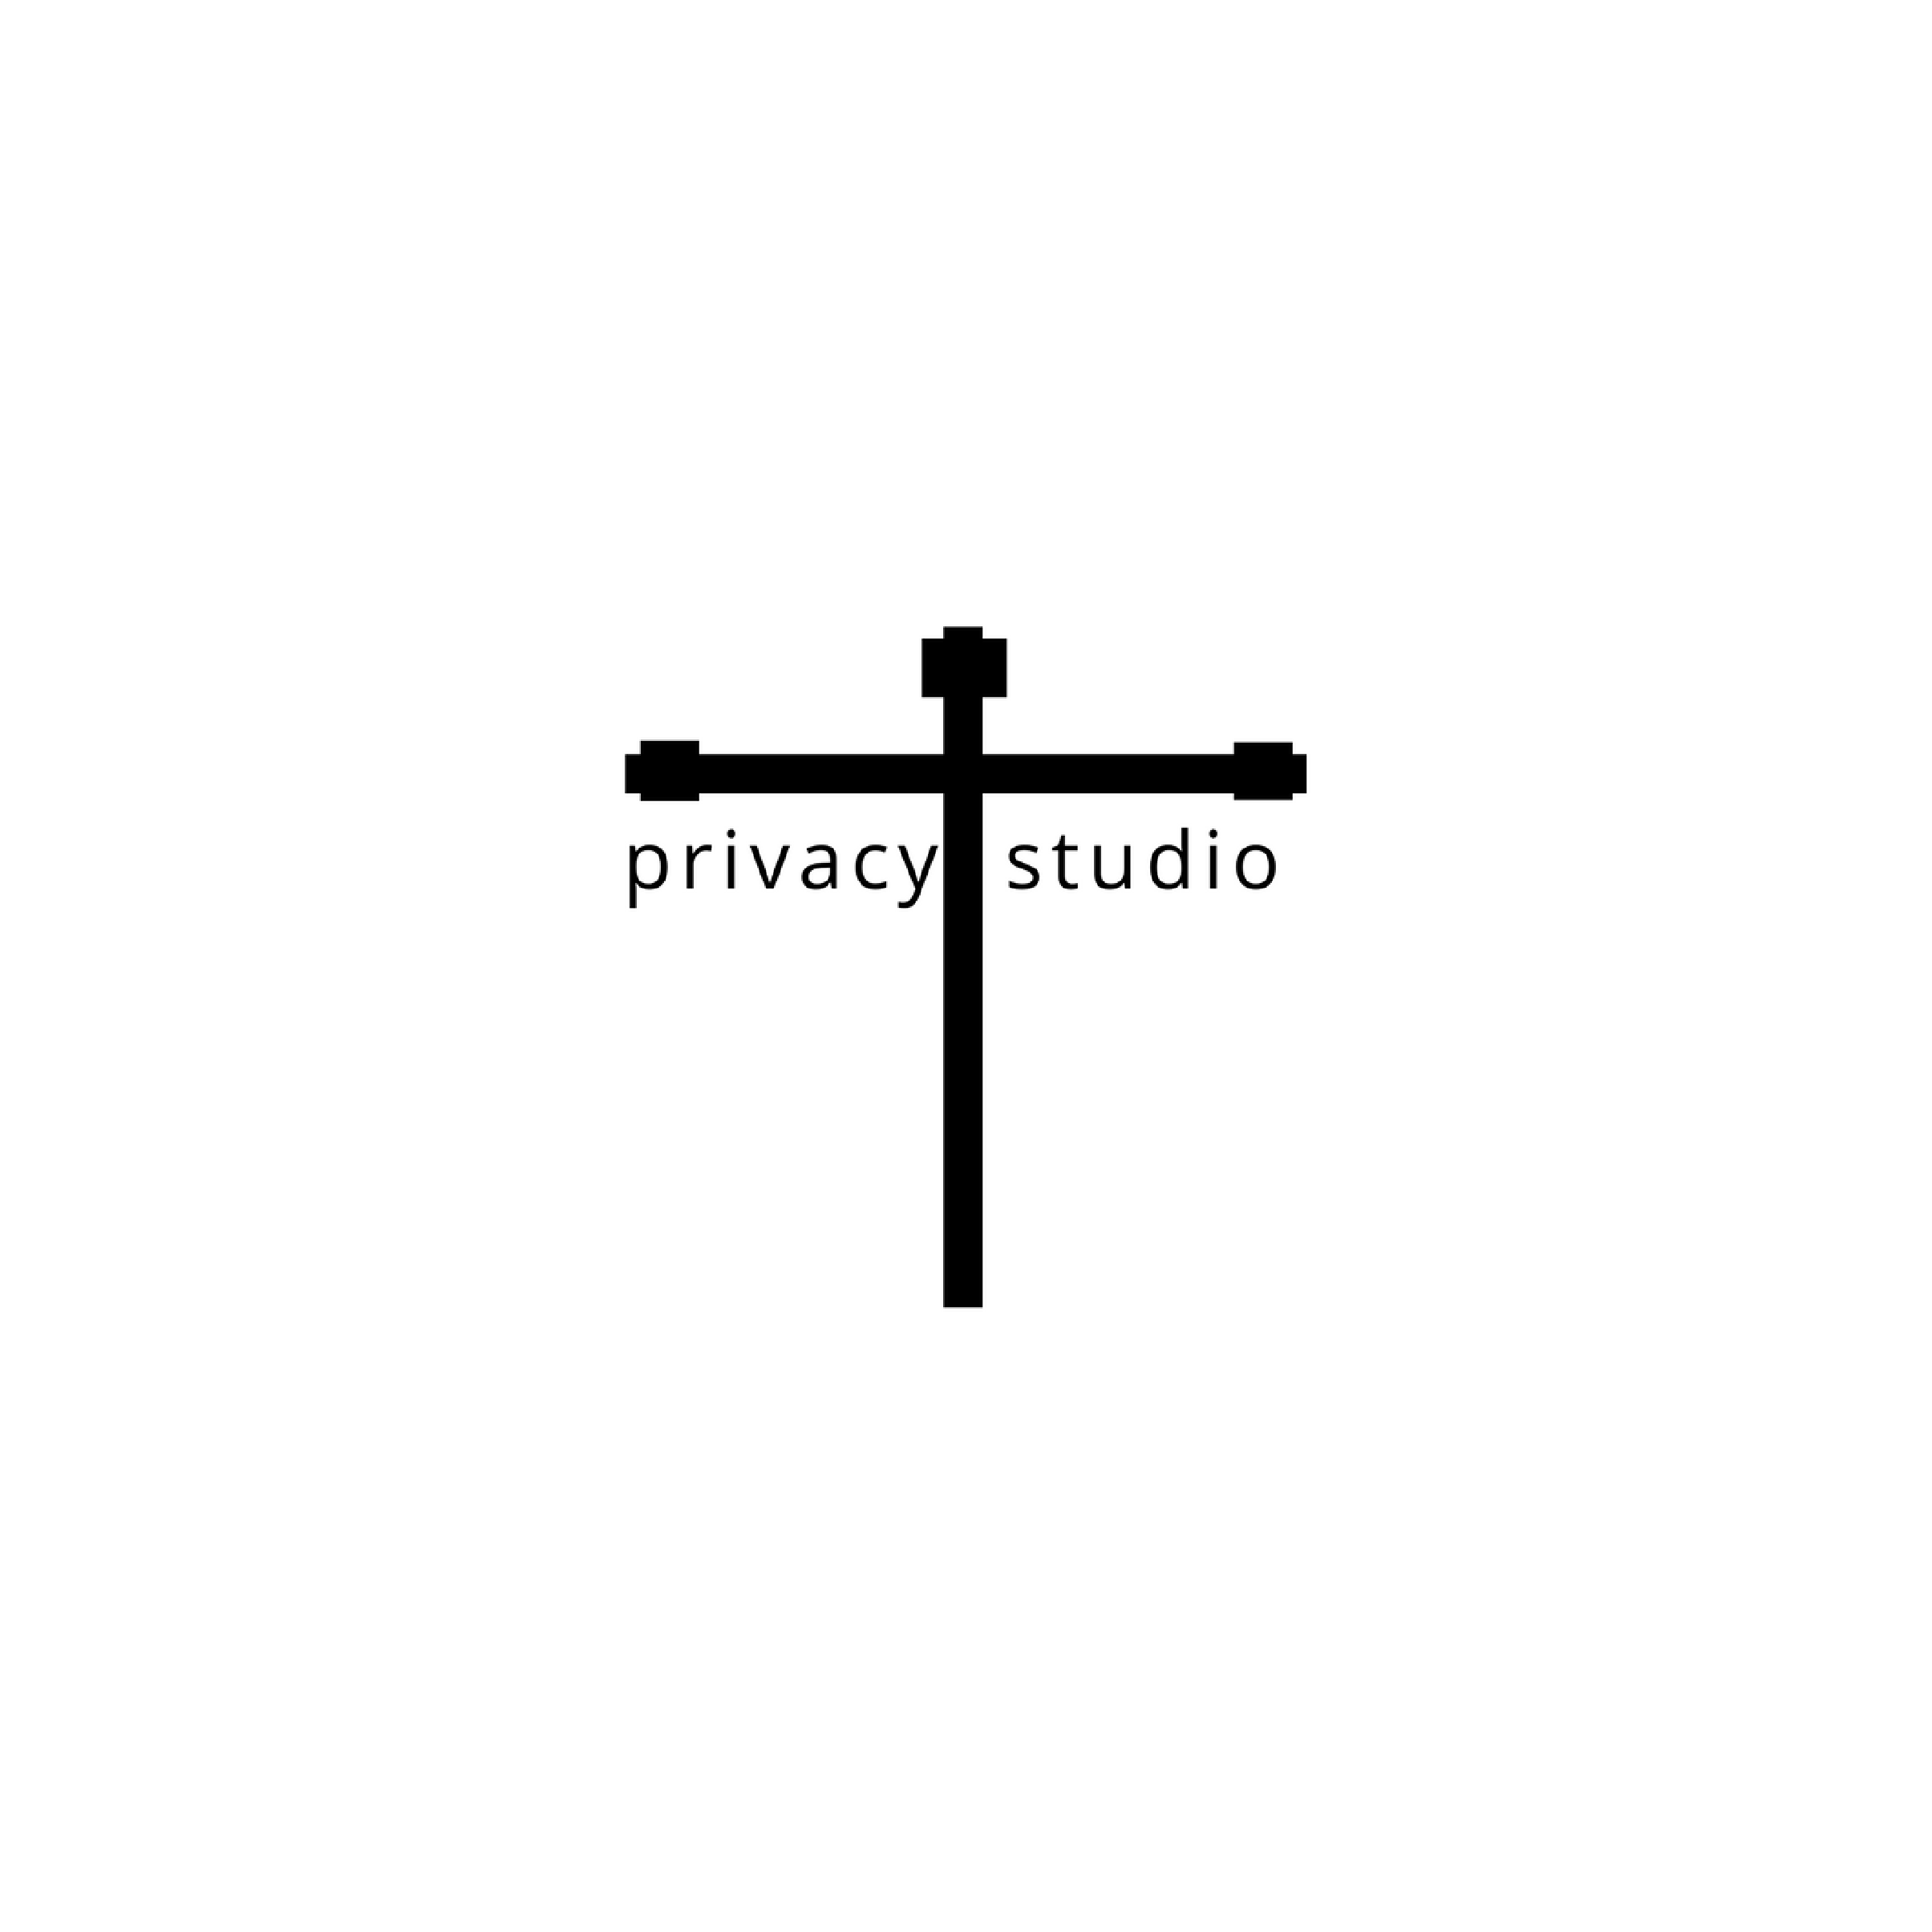 PRIVACY STUDIO